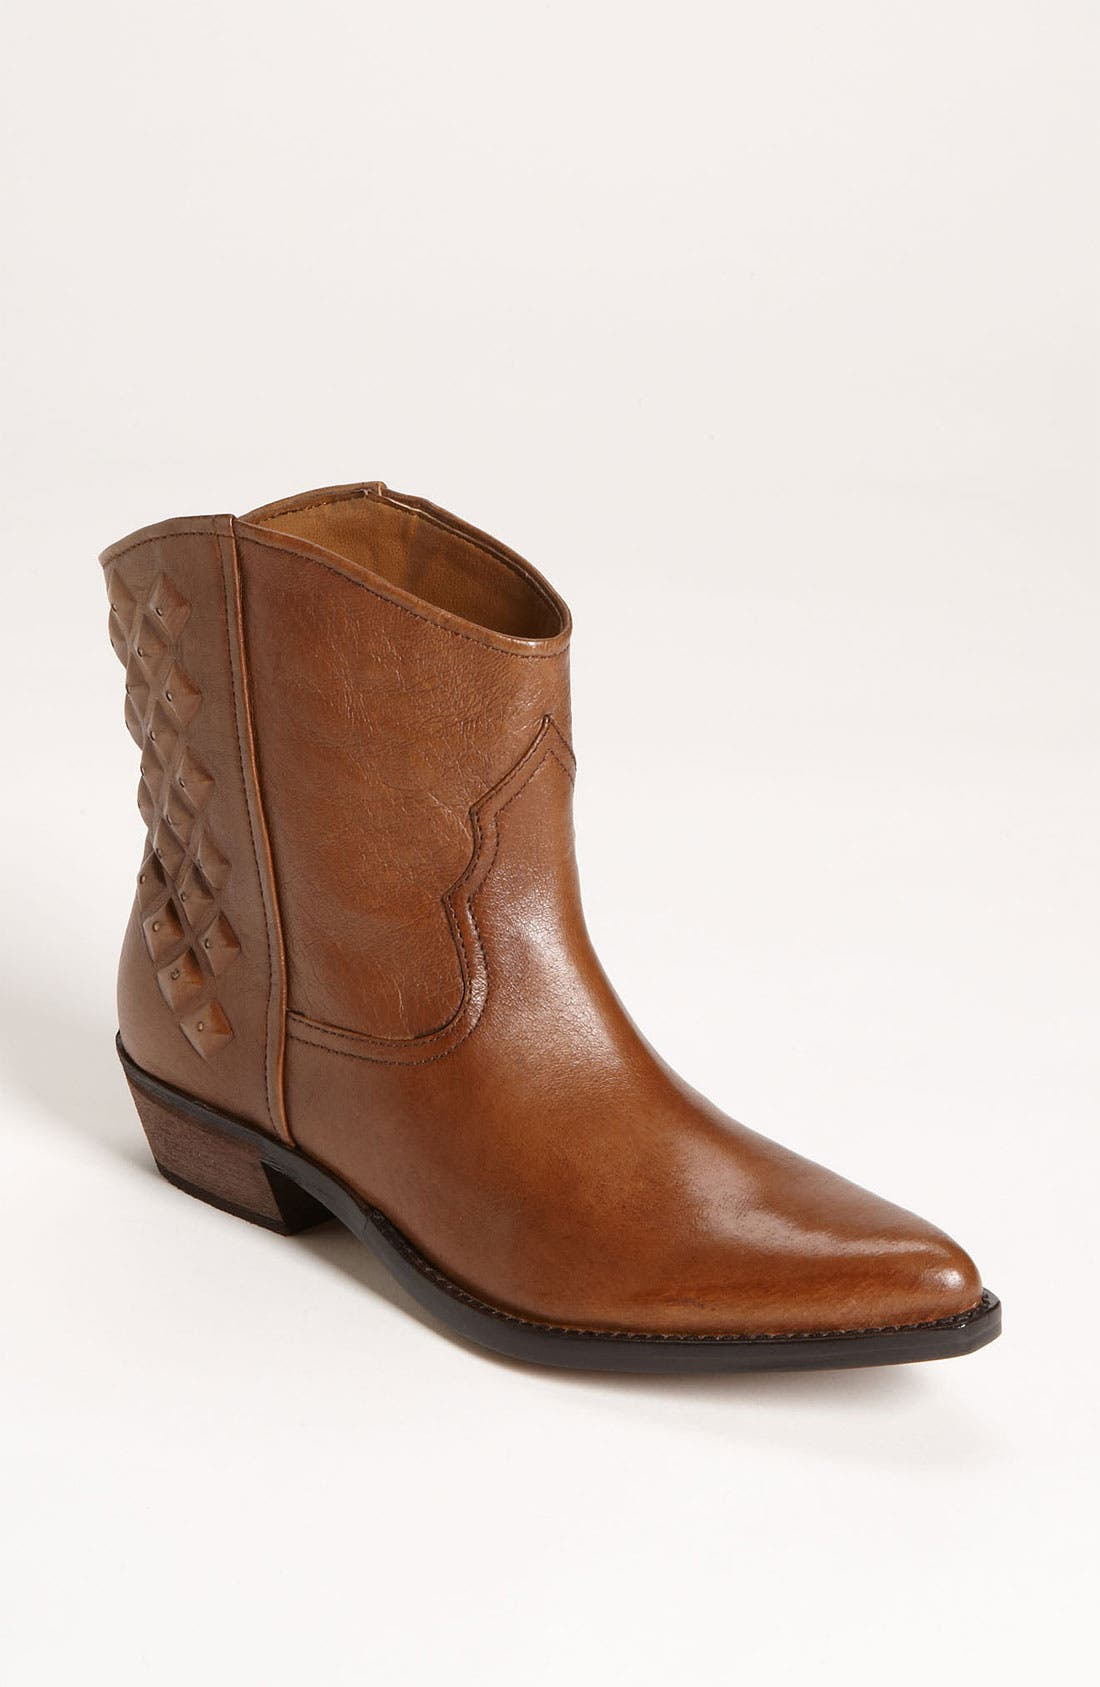 Alternate Image 1 Selected - Steve Madden 'Fortwrth' Boot